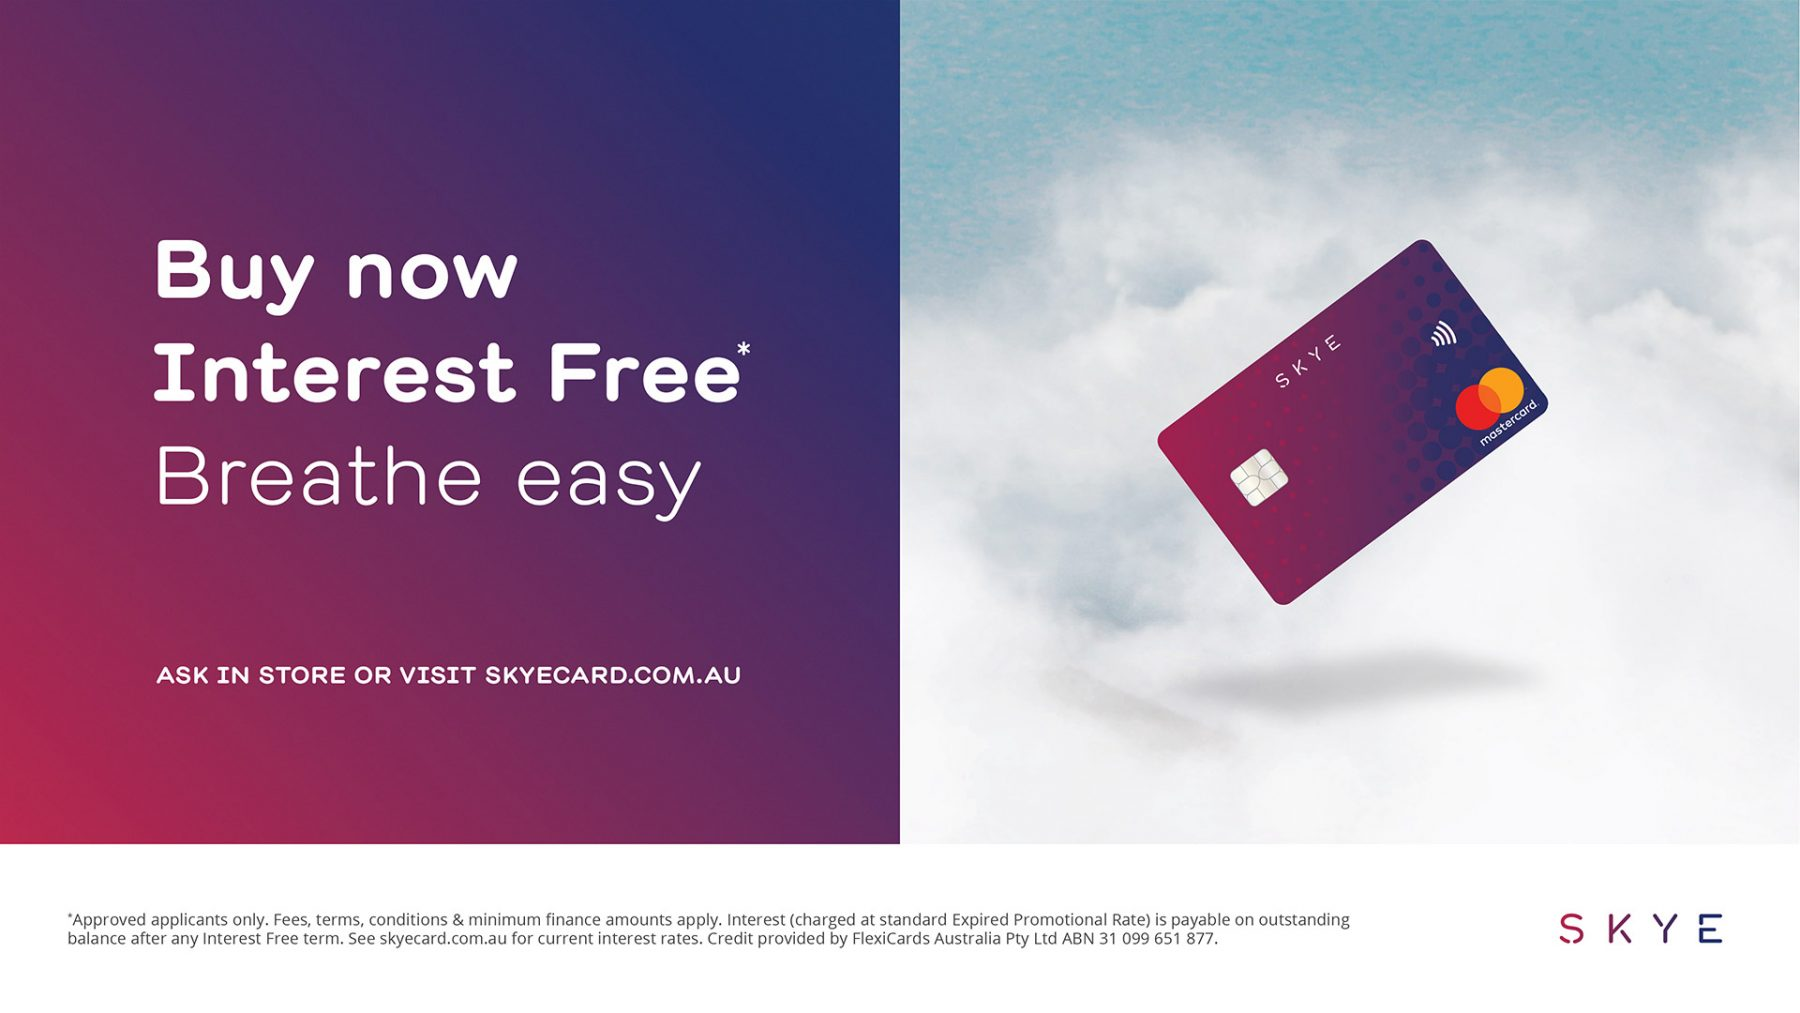 0ed6cc64682 Start living the lifestyle now! You can enjoy your new spa or swim spa  sooner by financing with SKYE. Buy now Interest Free* WHY SKYE?